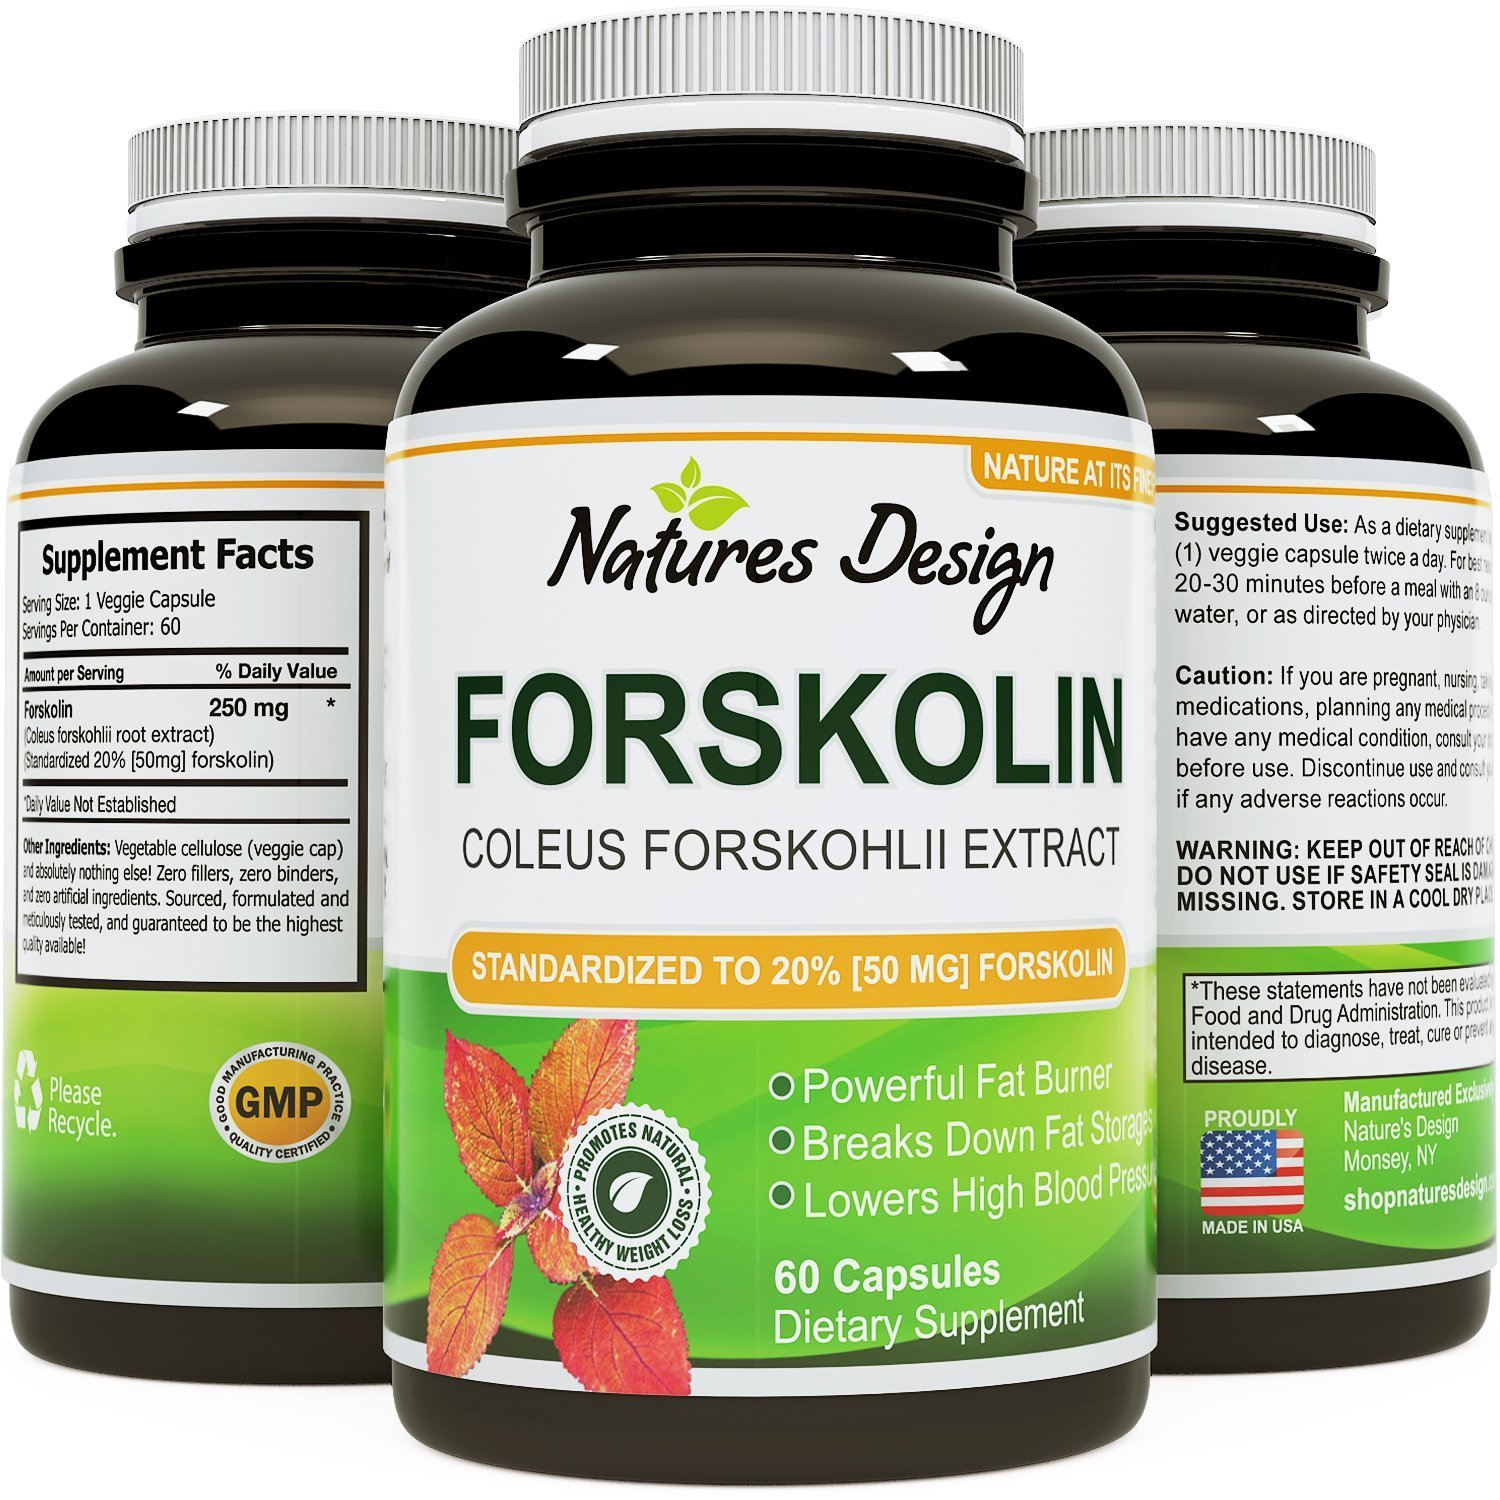 Natures Craft Pure Forskolin Extract - Fat Burning & Metabolism Boosting Weight Loss Supplement - Natural Pills for Women & Men (60 Capsules)